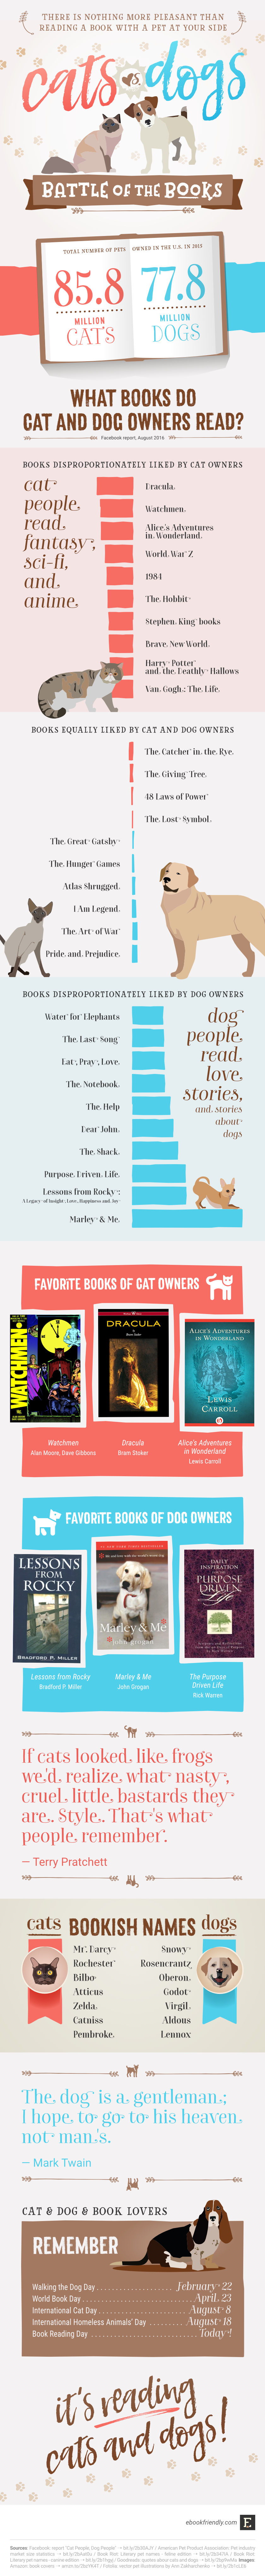 Cats and dogs: battle of the books #infographic